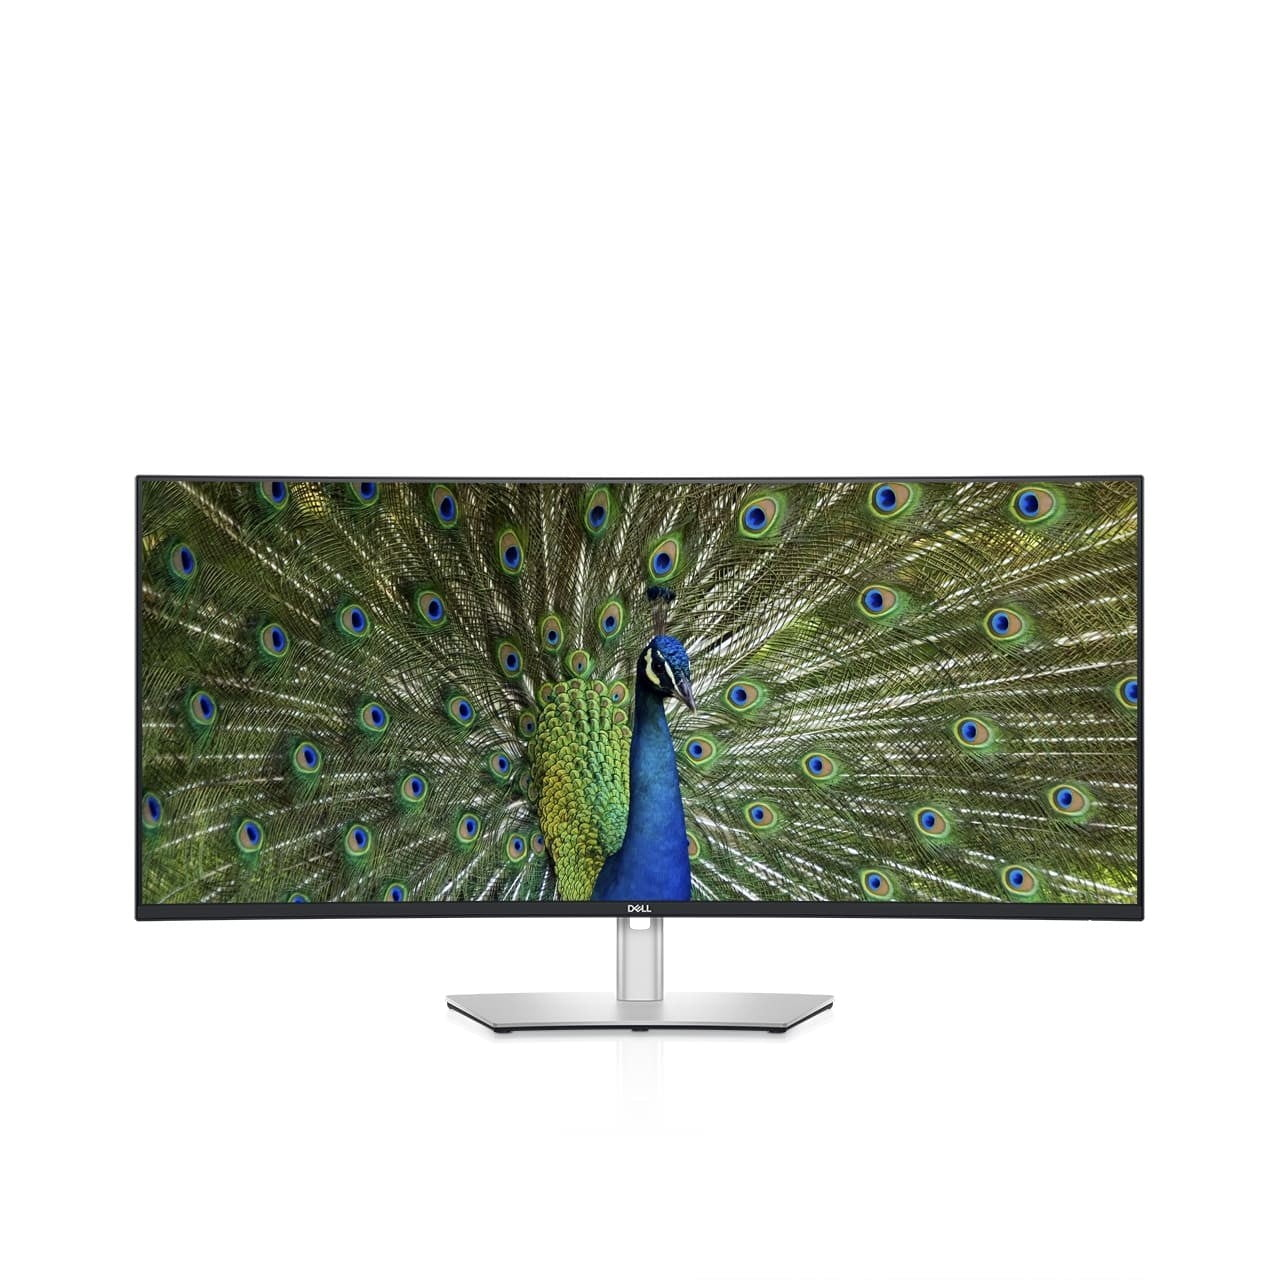 dell refreshes ultrasharp monitors ces 2021 40 curved monitor front 1